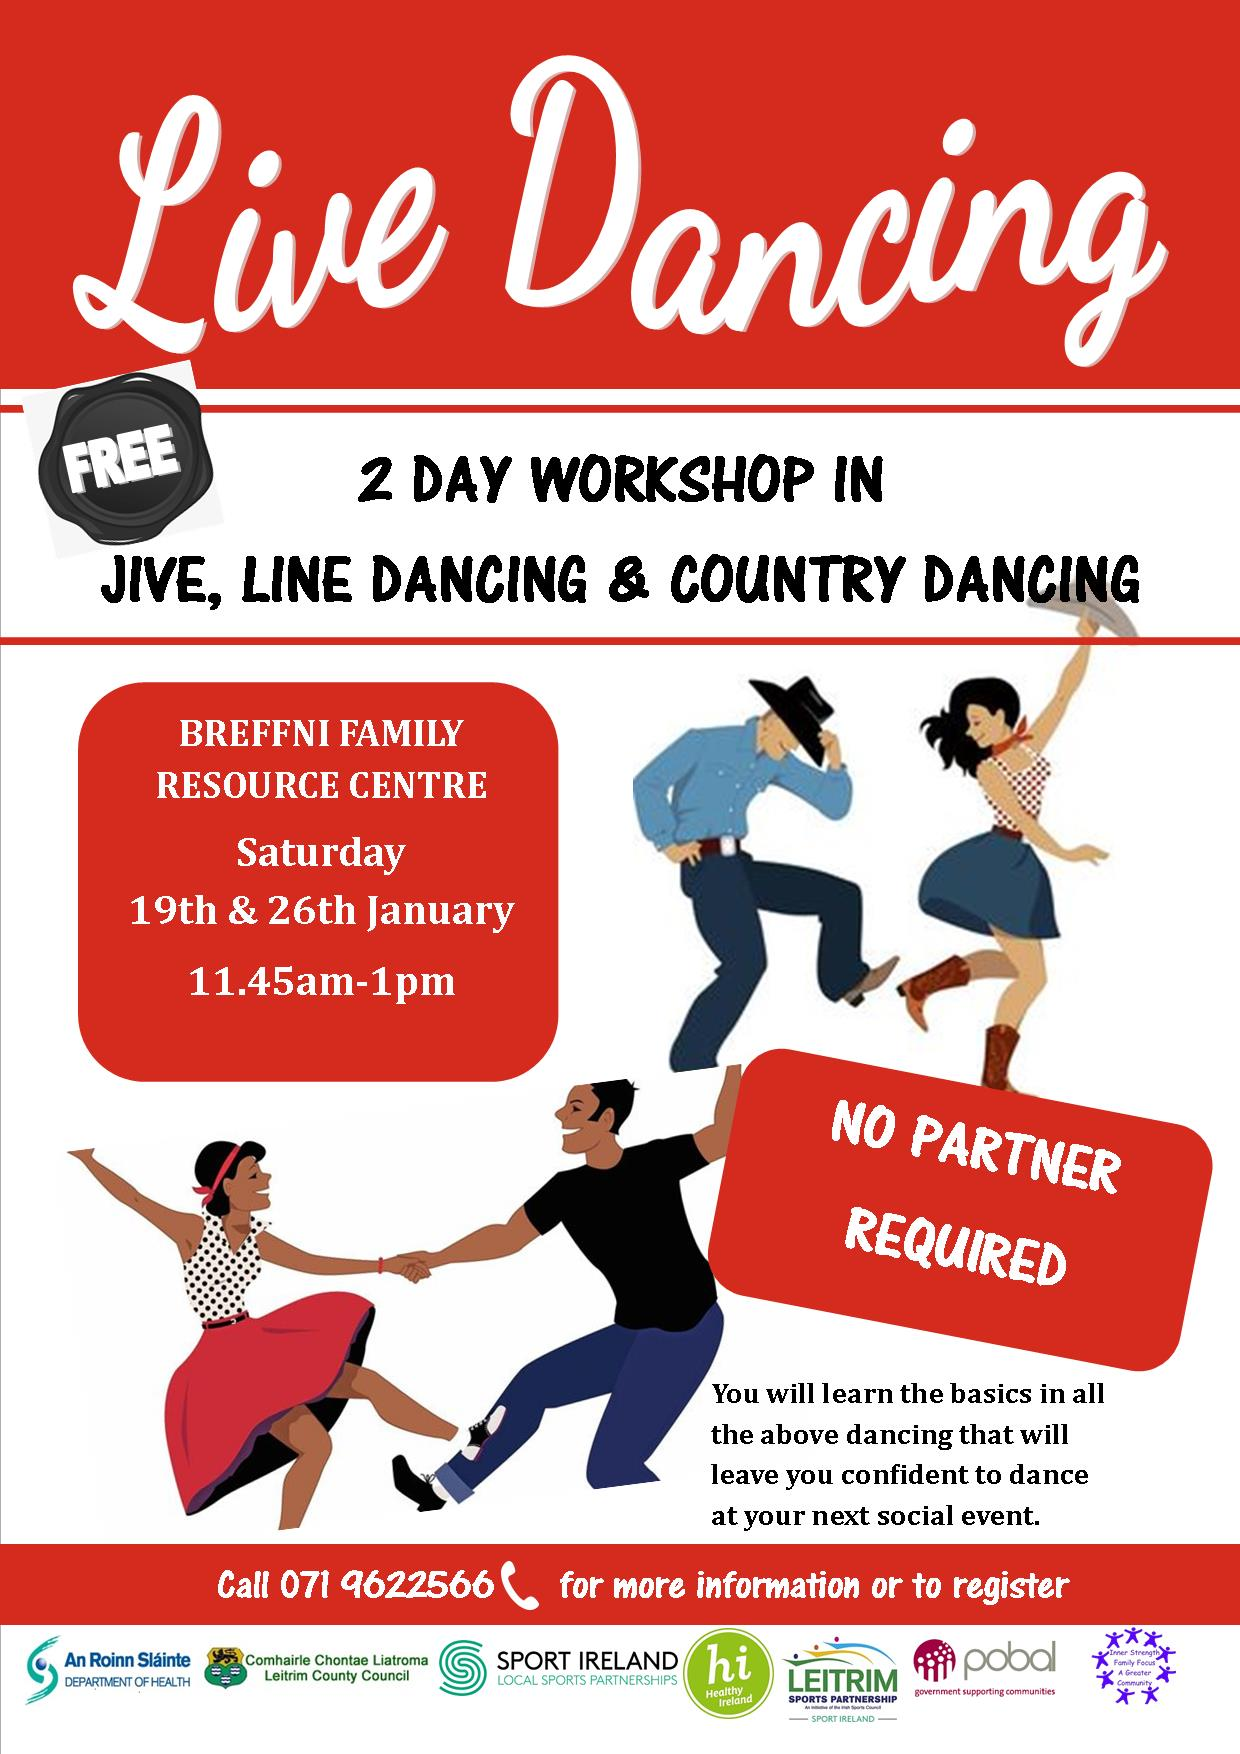 MyCarrick Event - Breffni Family Resource Centre - Live Dancing